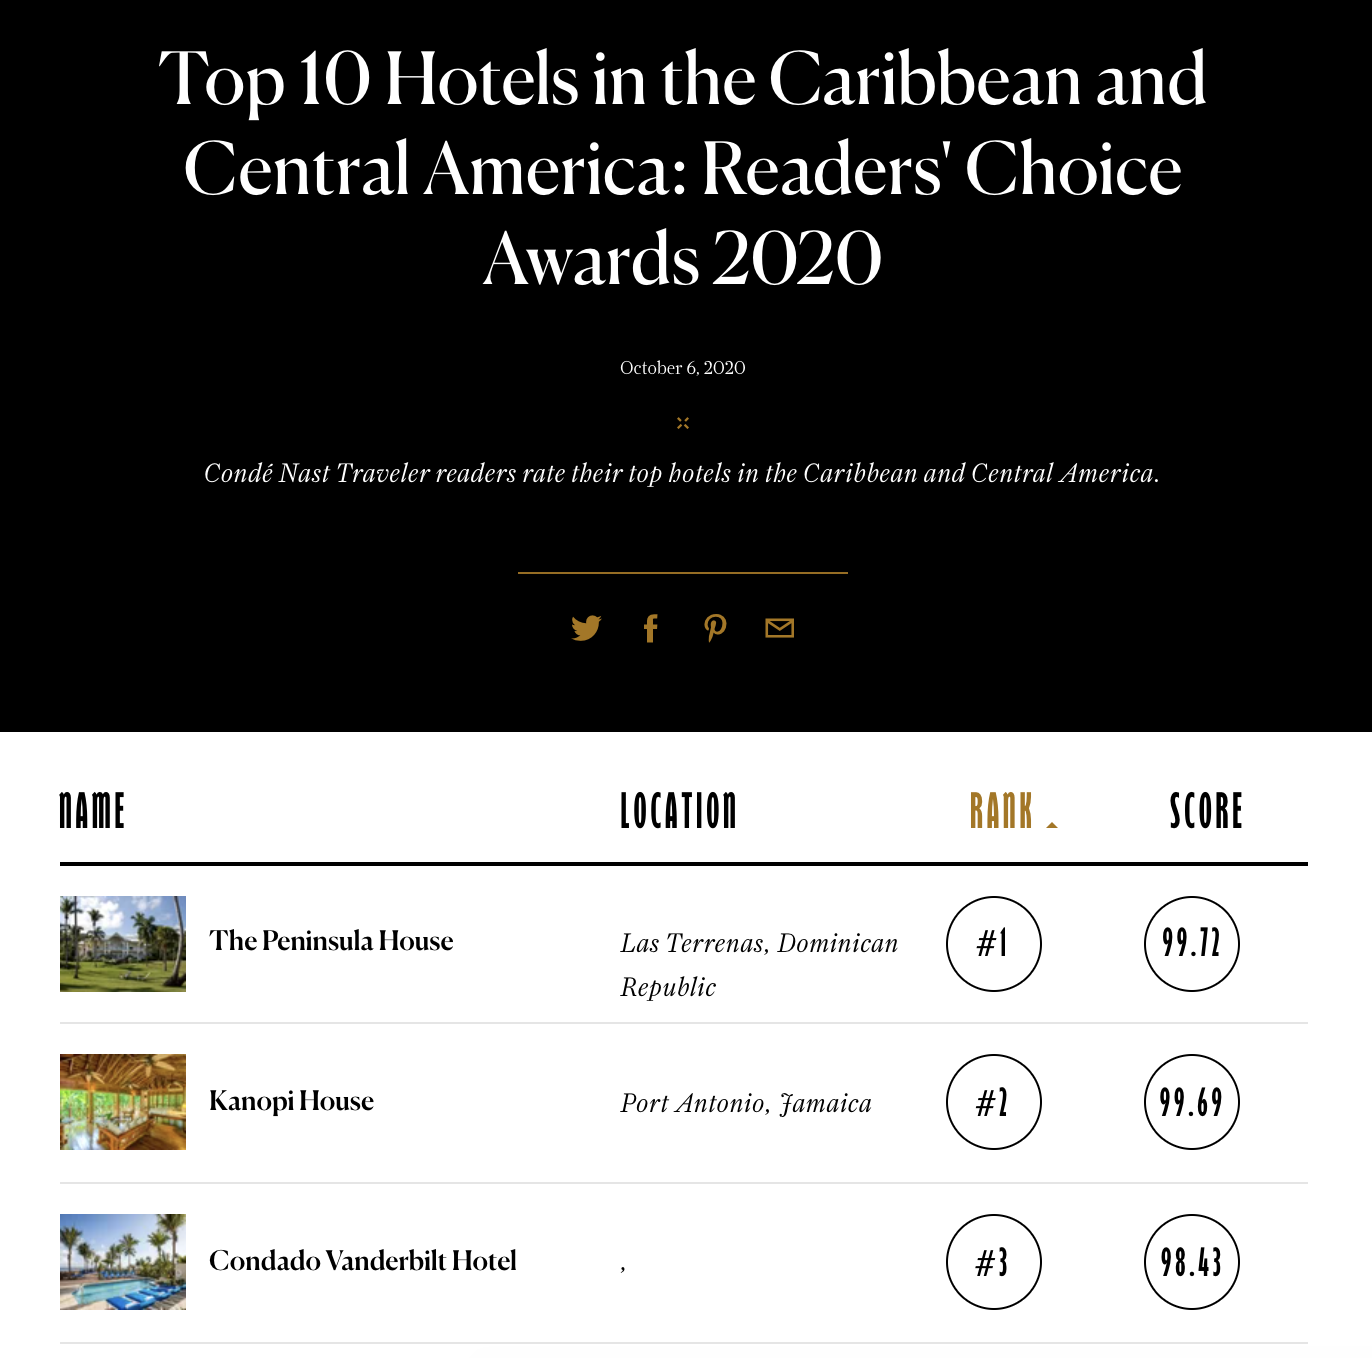 Top hotels in the Carribbean